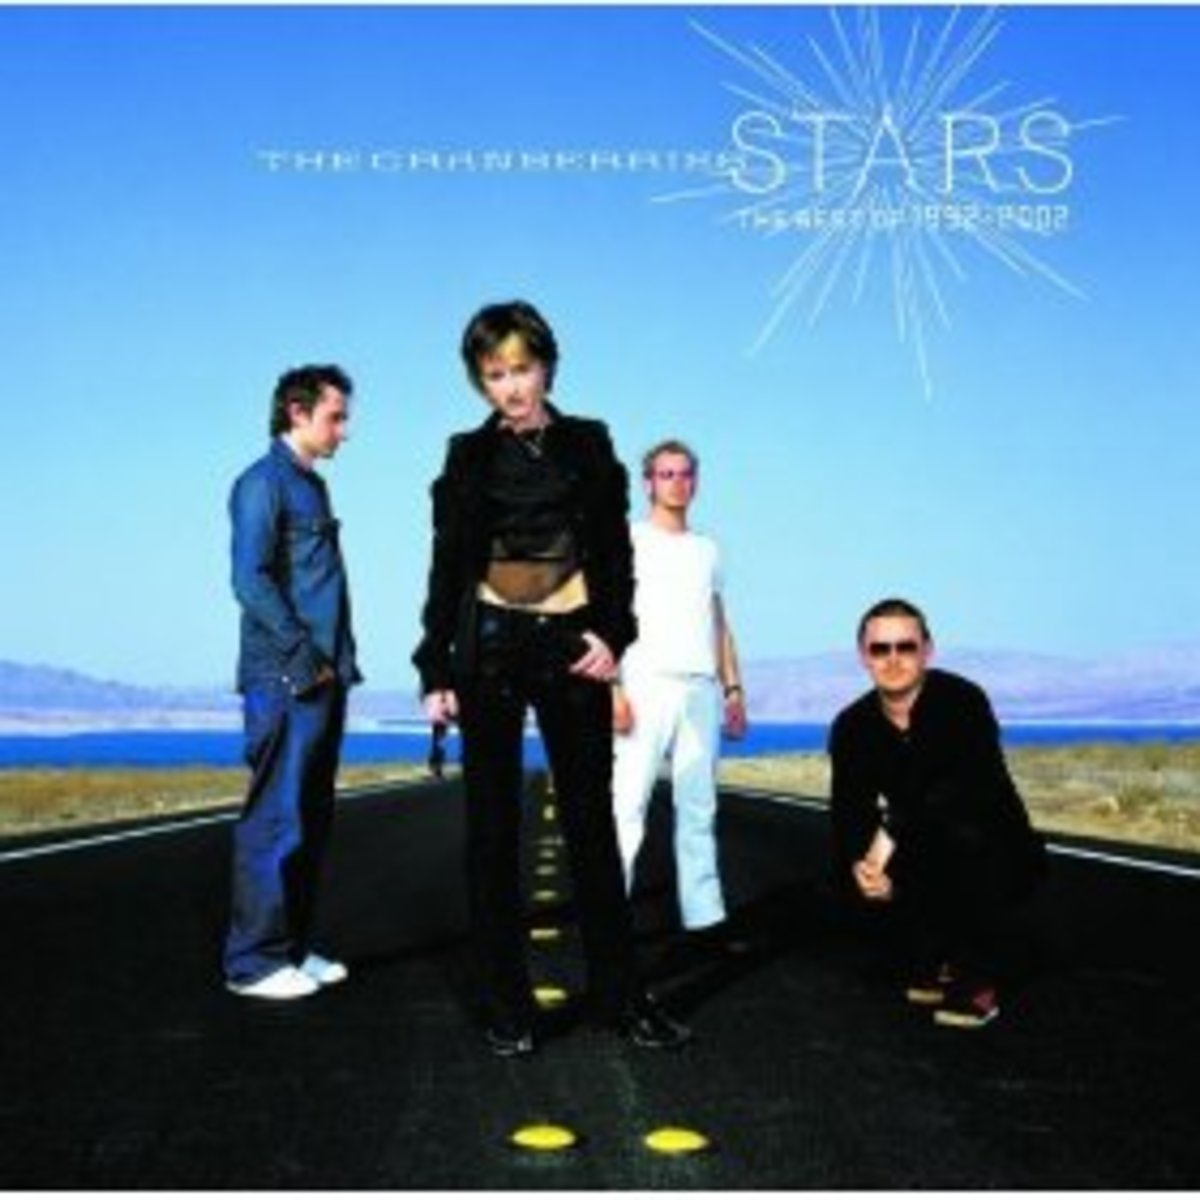 Zombie The Cranberries - Album Stars: The Best of the Cranberries 1992-2002